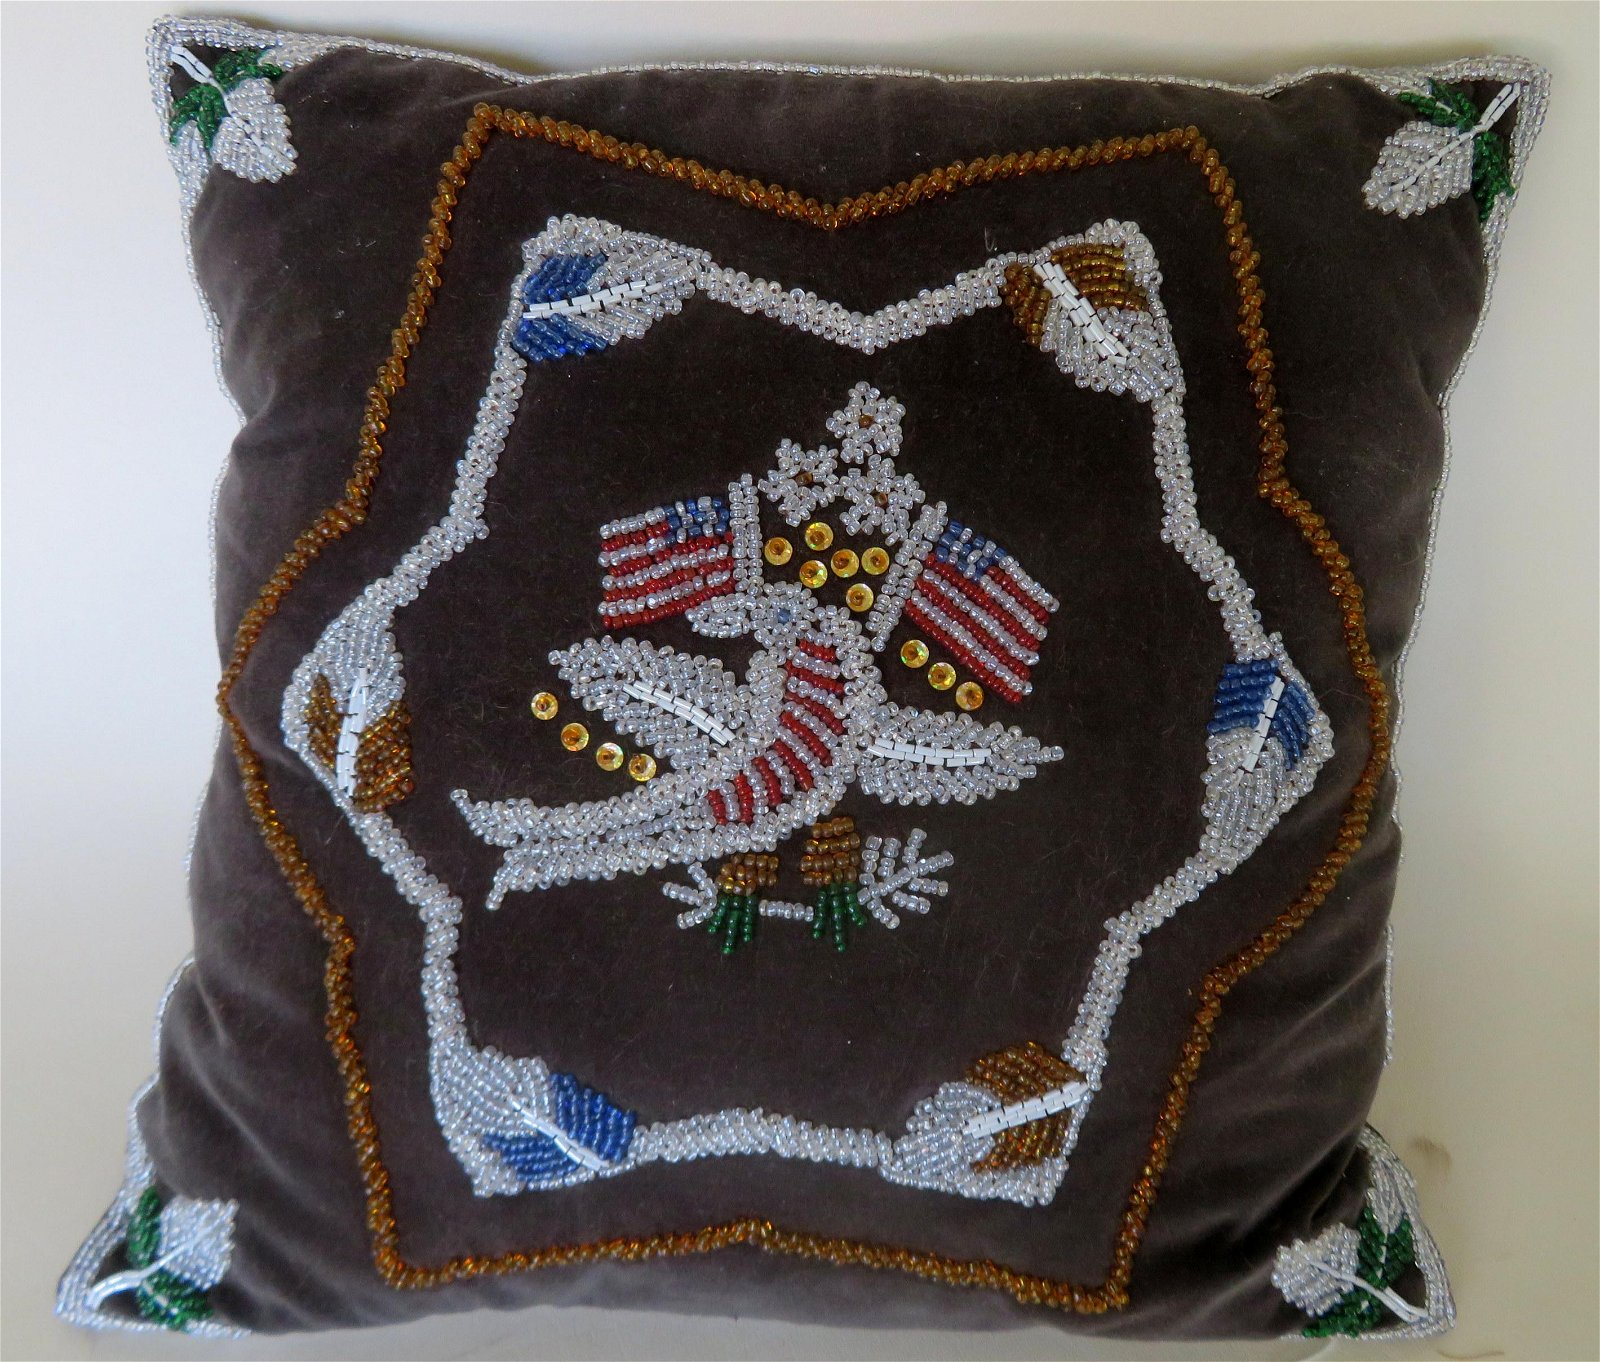 A velvet beadwork pillow, the center decorated by an